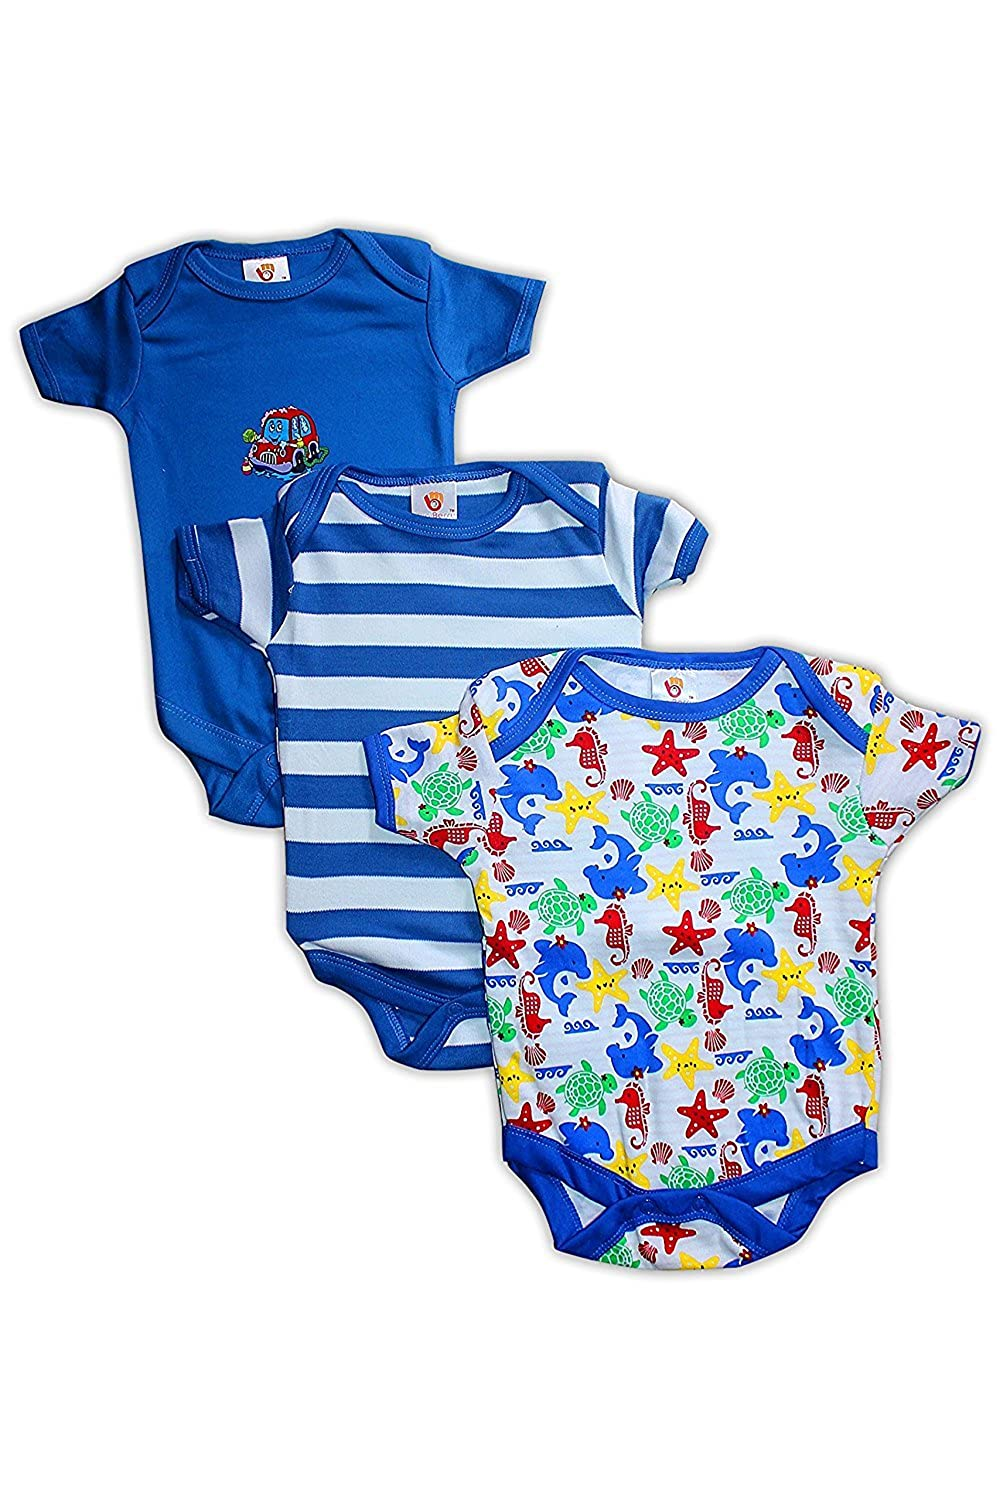 1b6a90d52 Baby Station Baby Rompers Short Sleeves 3pcs Summer Suit for Baby Boy  (Print May Vary)  Amazon.in  Clothing   Accessories